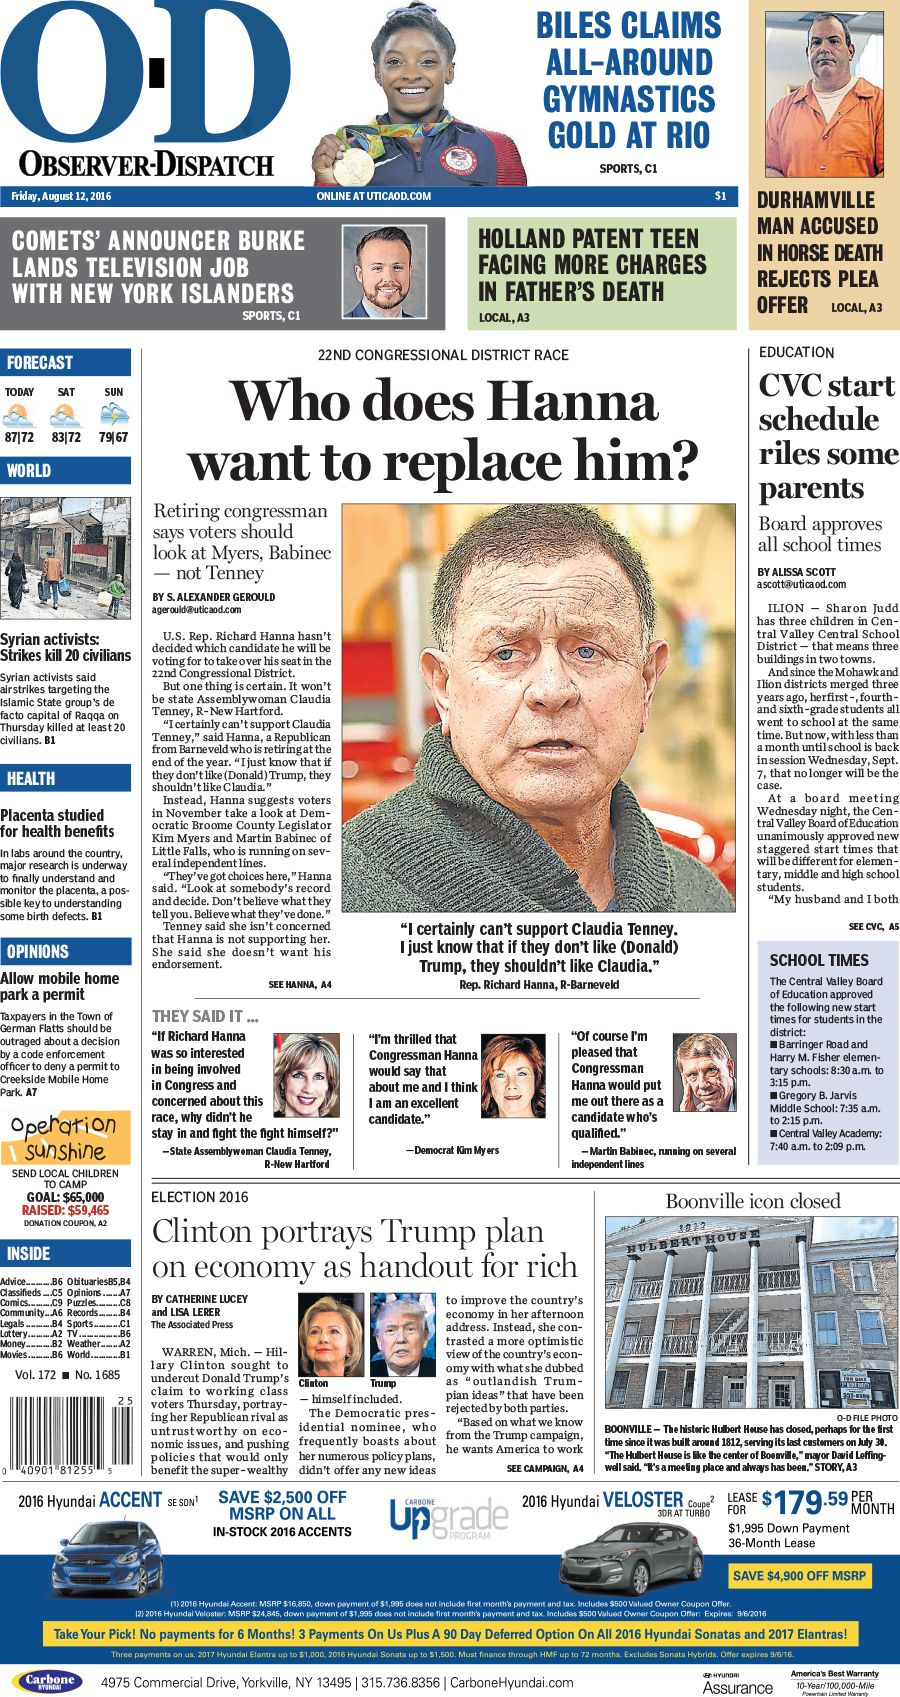 The front page for Friday, Aug. 12, 2016: Who does Hanna want to replace him?